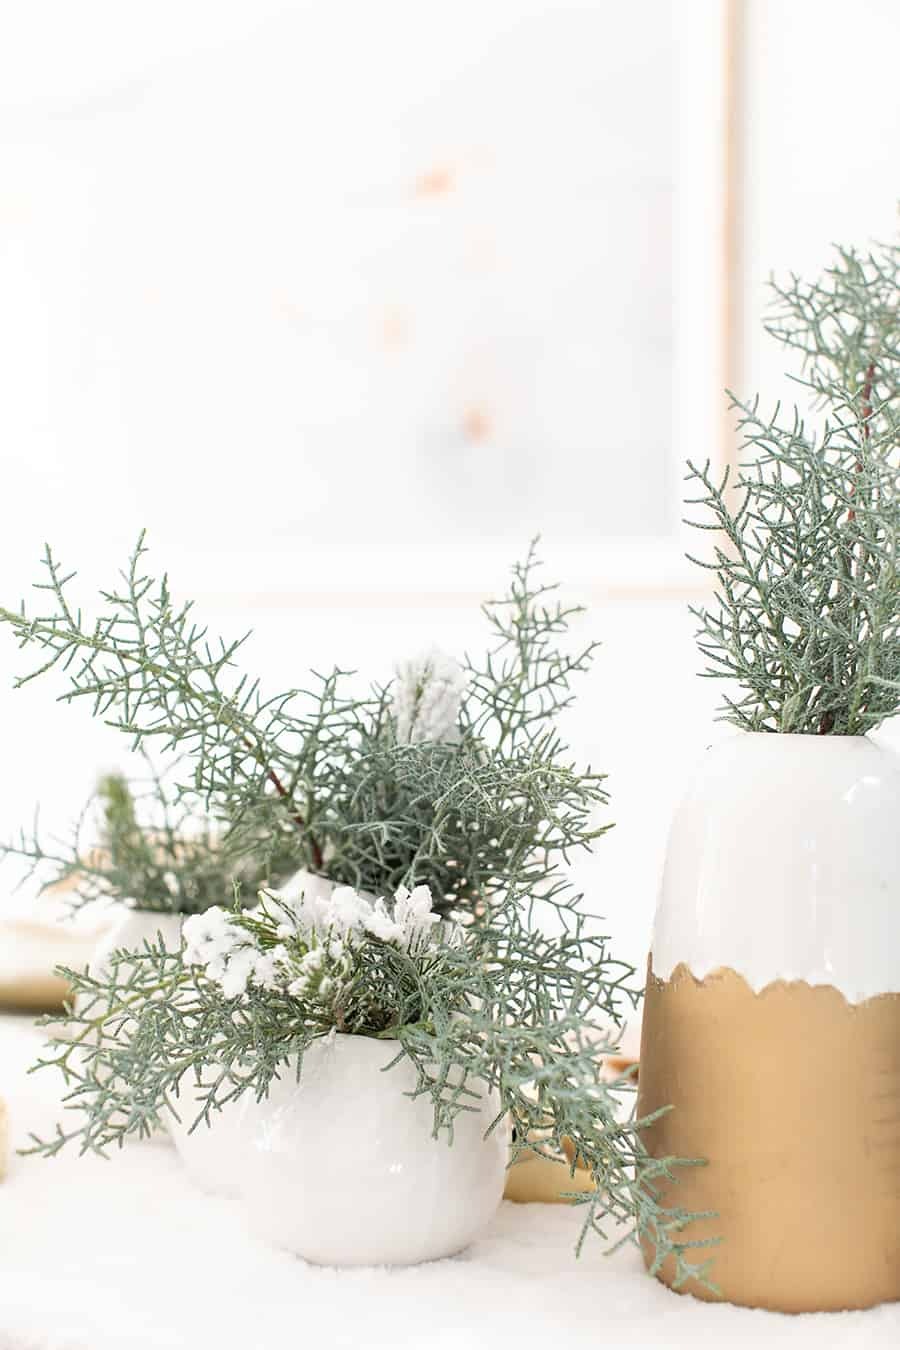 Christmas greens in a white and gold vase.